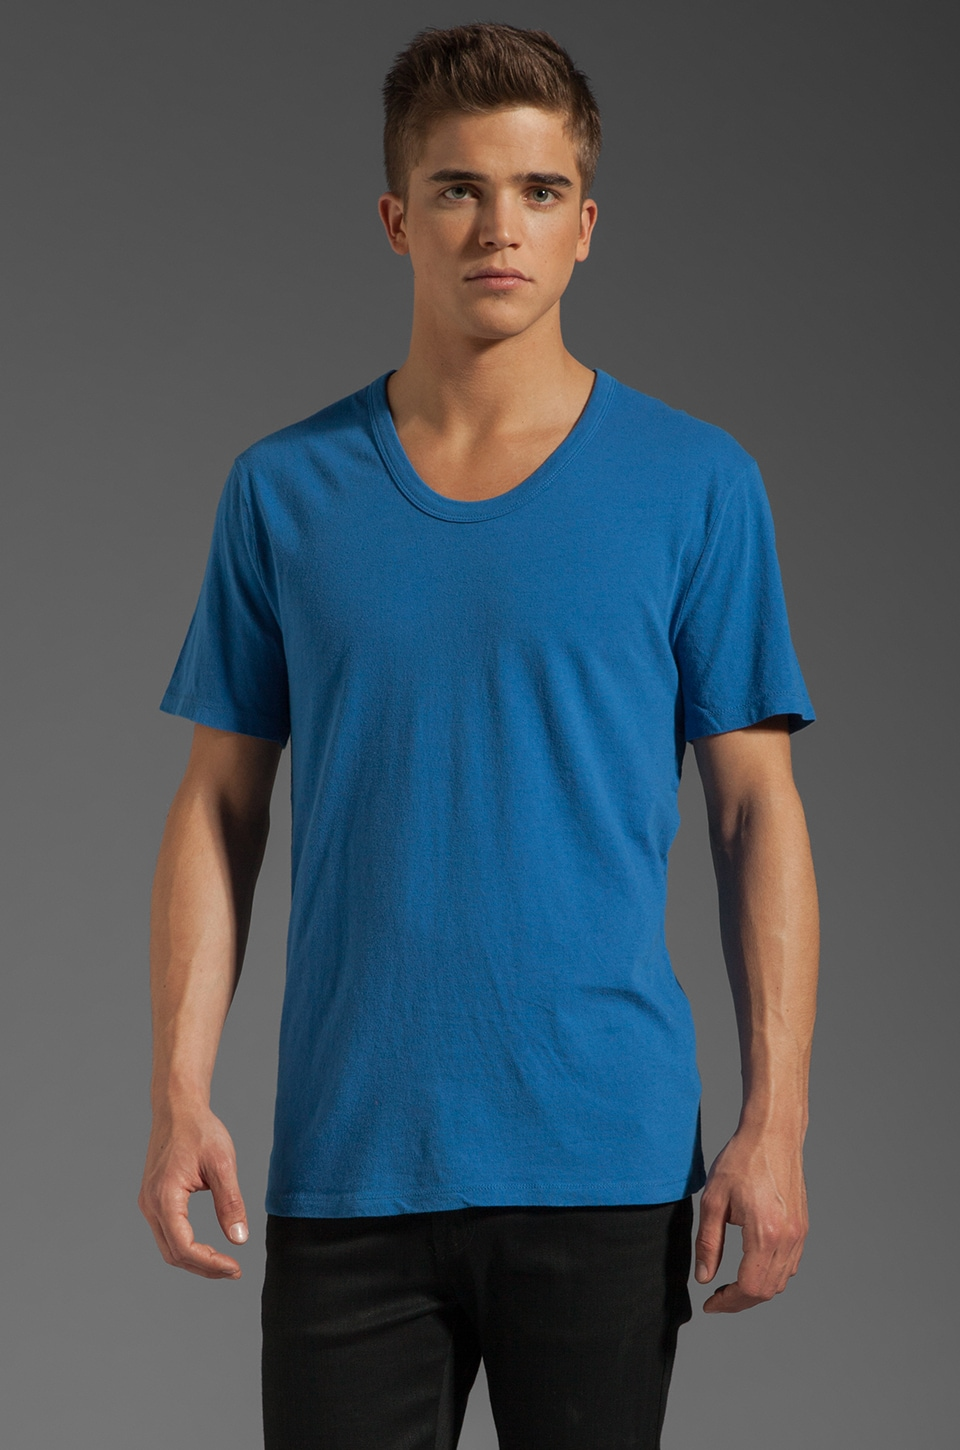 T by Alexander Wang Classic Low Neck Tee in Marine